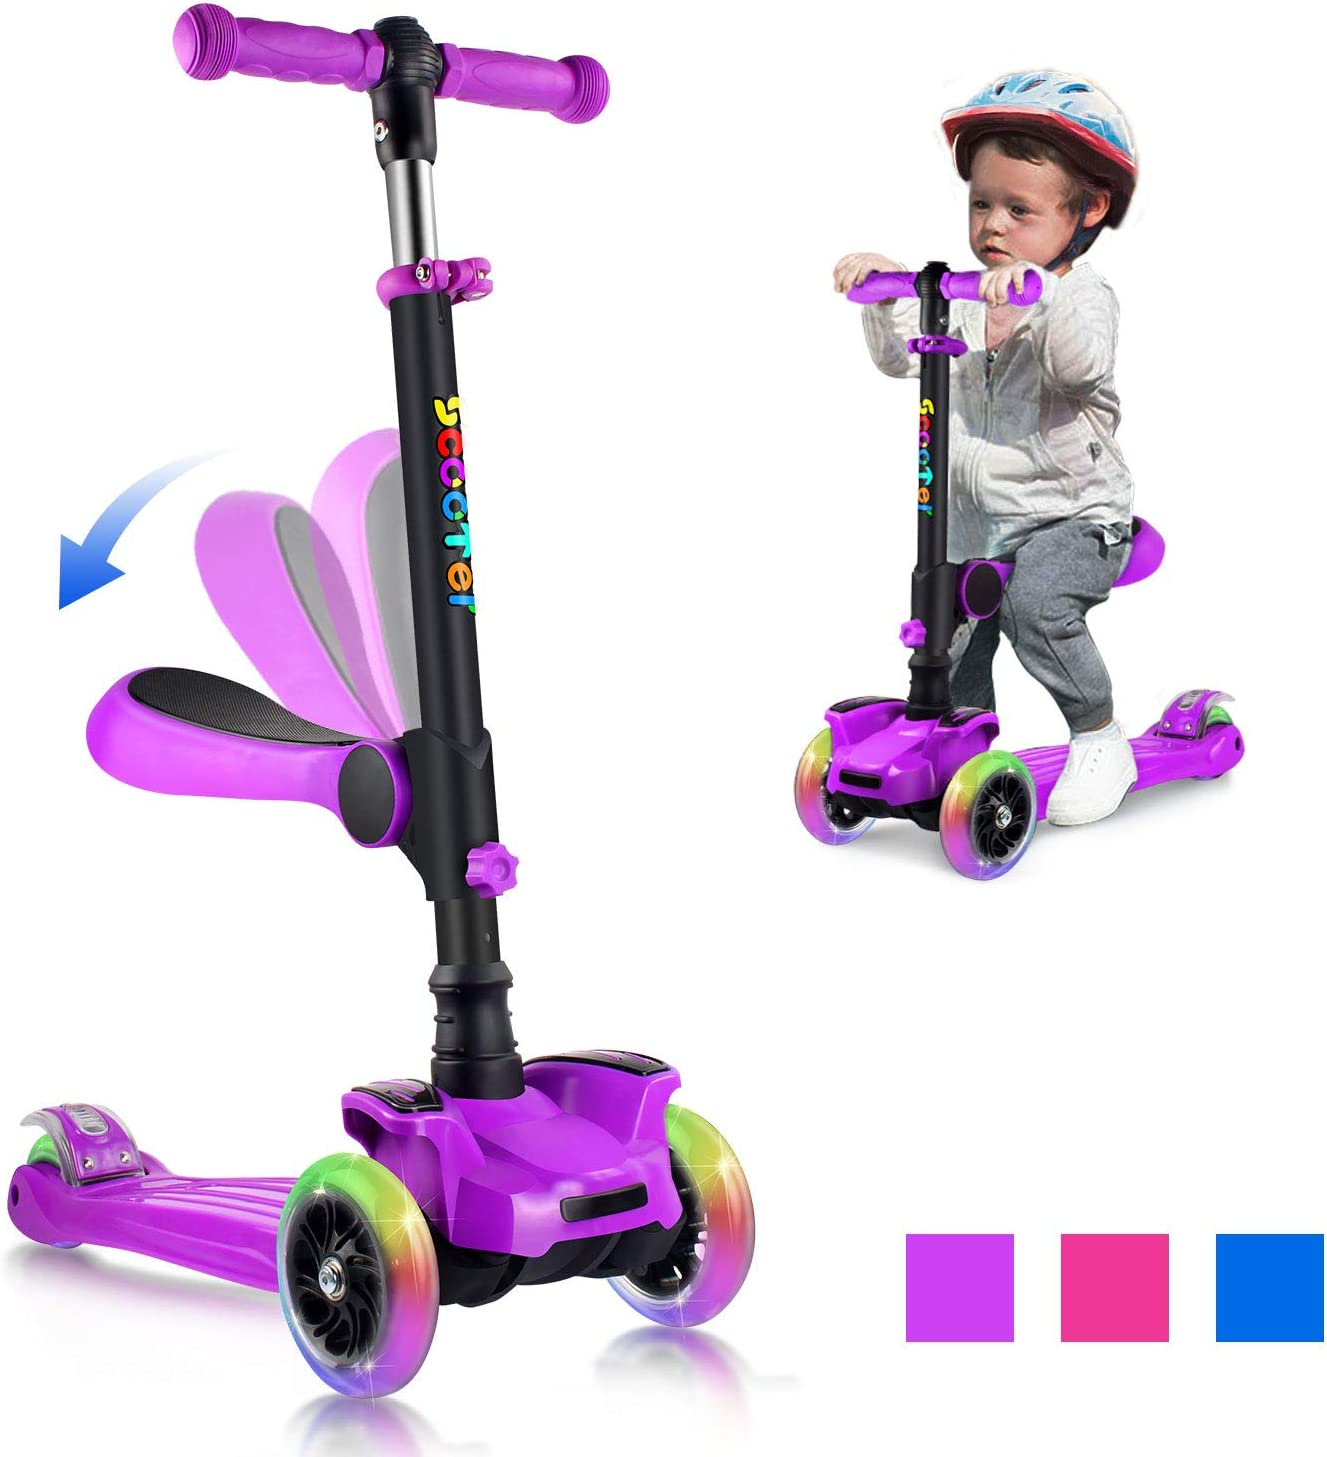 OUTON Scooter for Kids 3 Wheel Kick Scooter